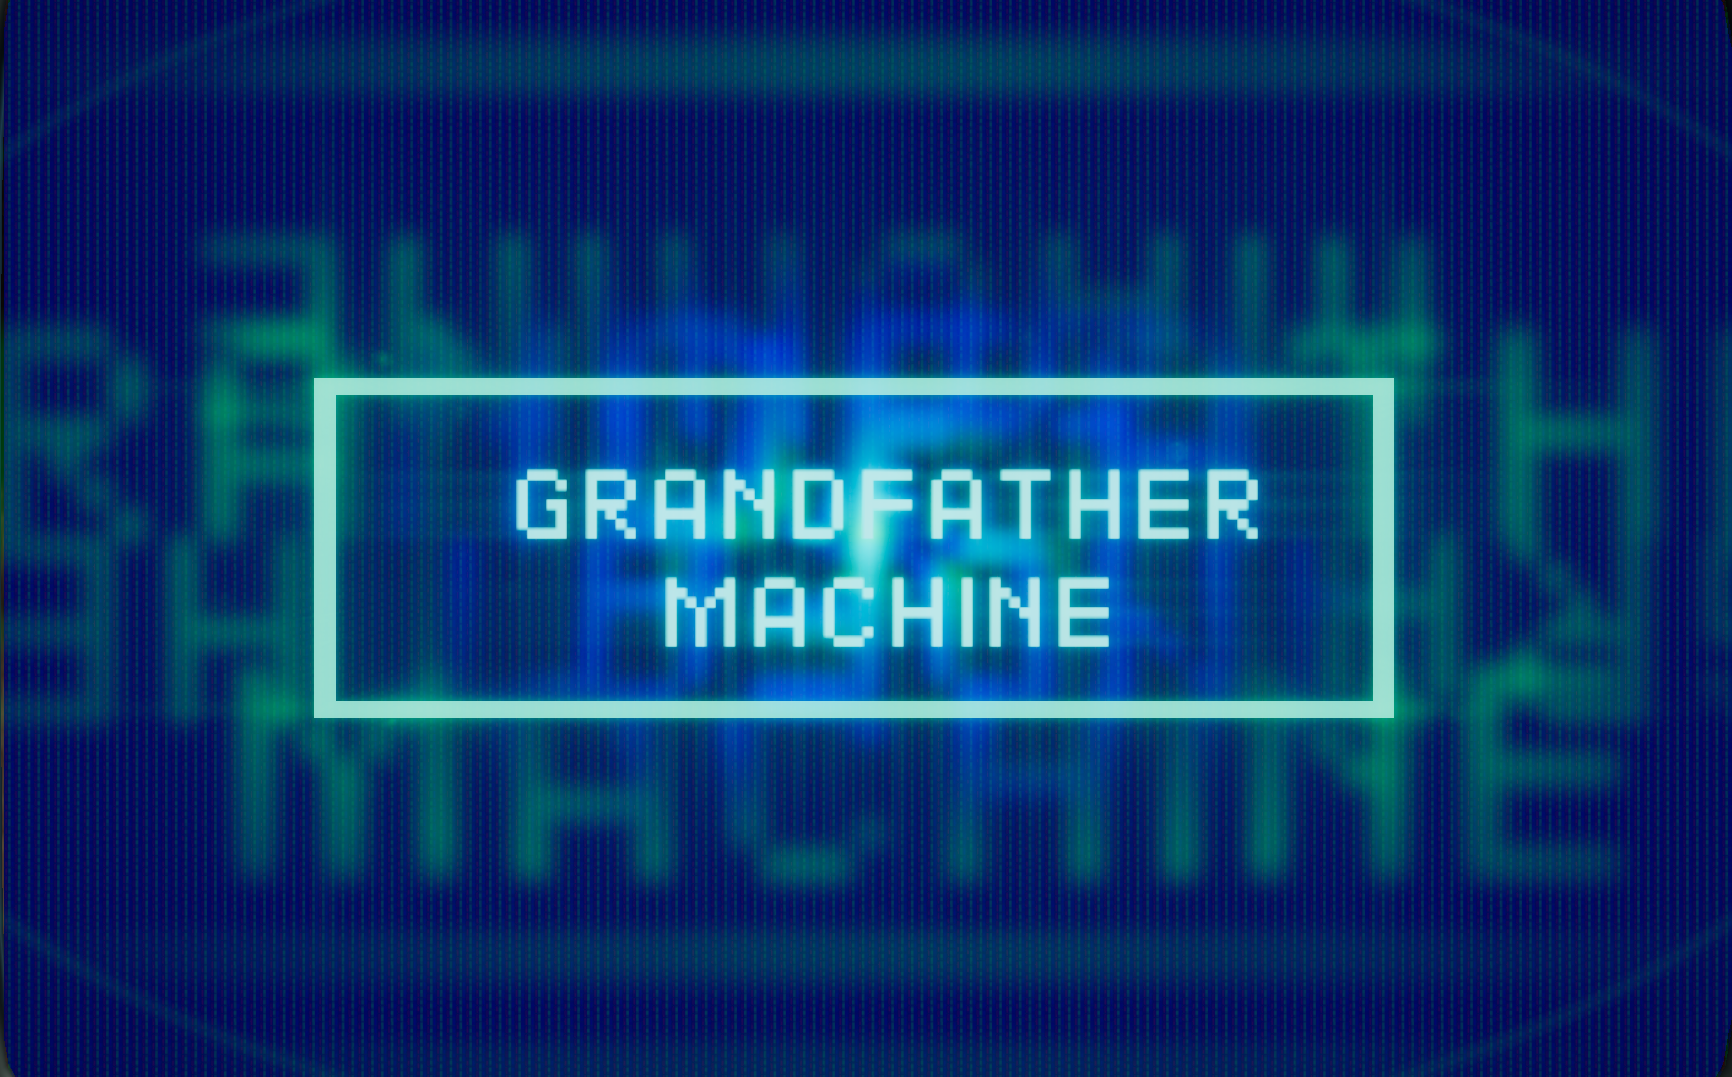 The Grandfather Machine